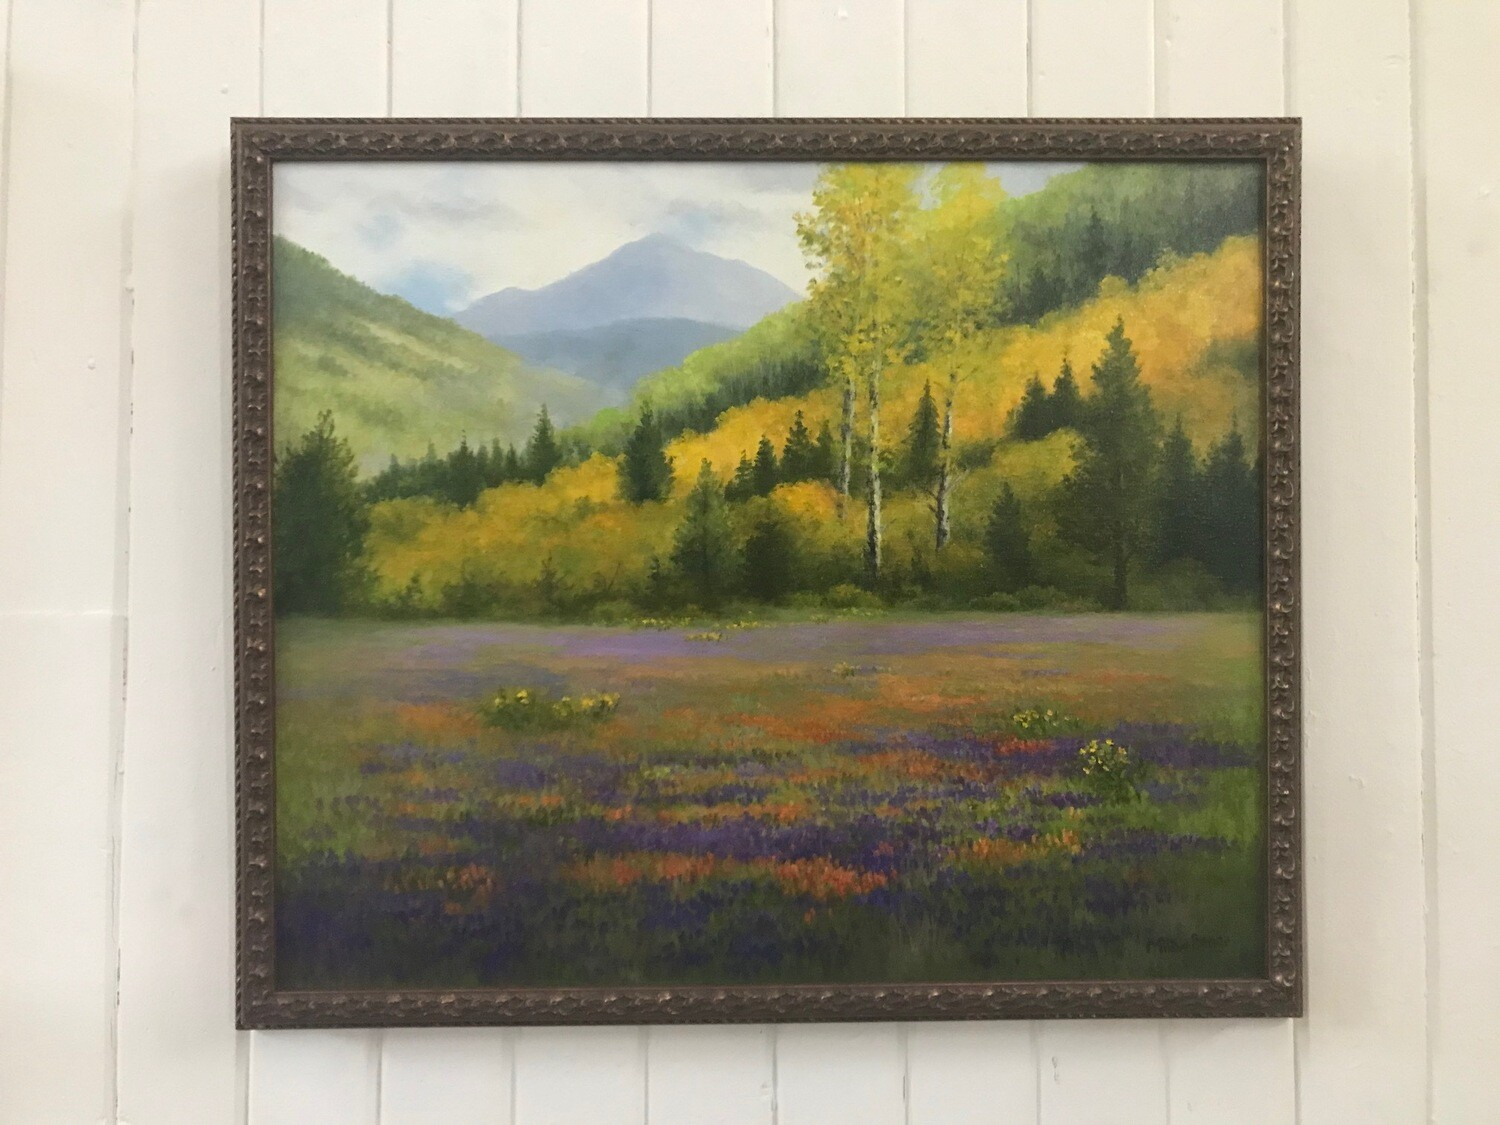 Summertime in the Mountains by Milbe Benge